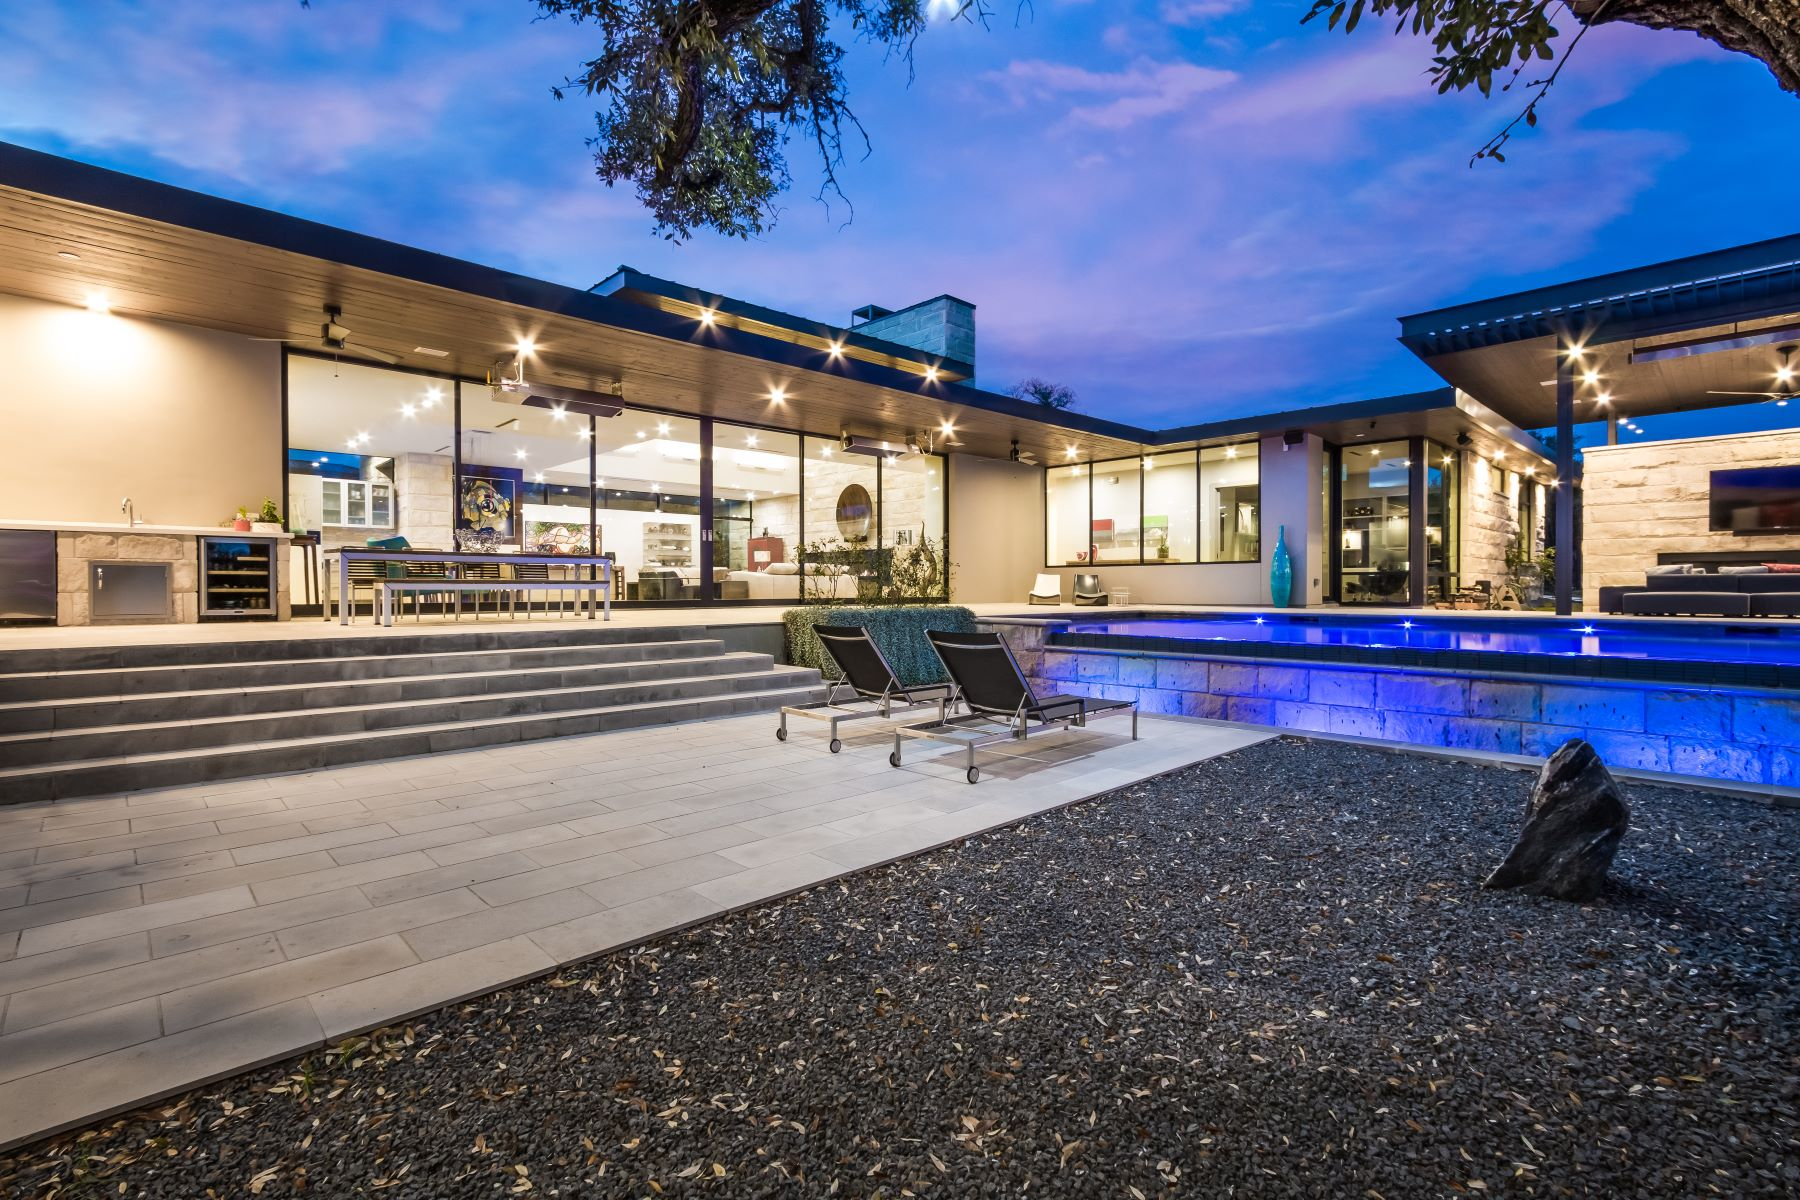 Additional photo for property listing at Dick Clark Contemporary on 2 Acres 4017 Verano Dr Austin, Texas 78735 United States